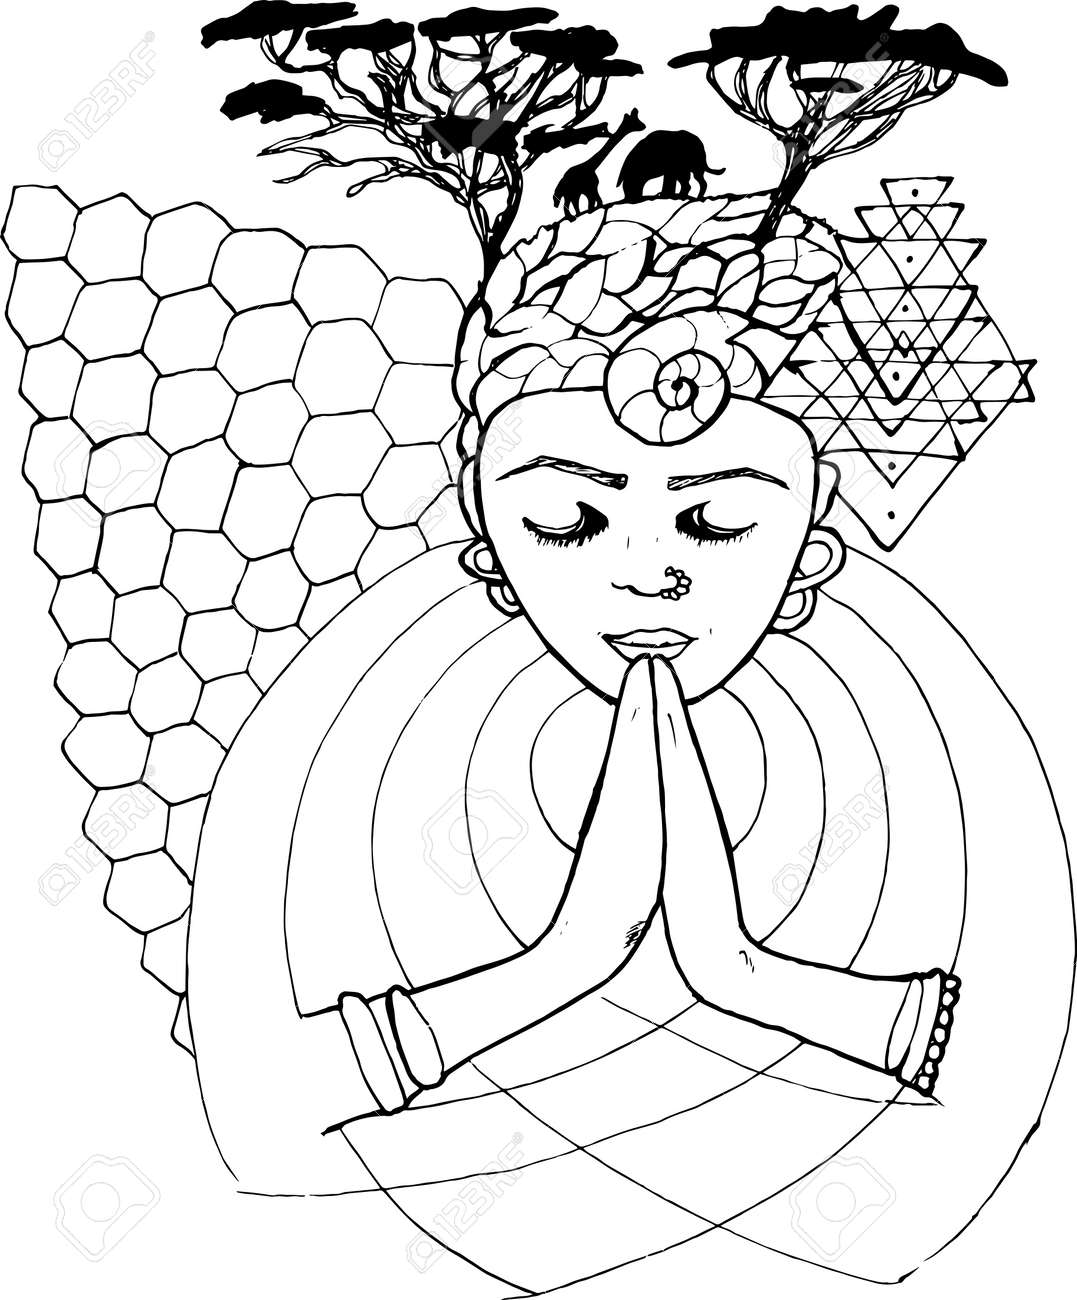 Black And White Drawing Of A Praying Person With Closed Eyes